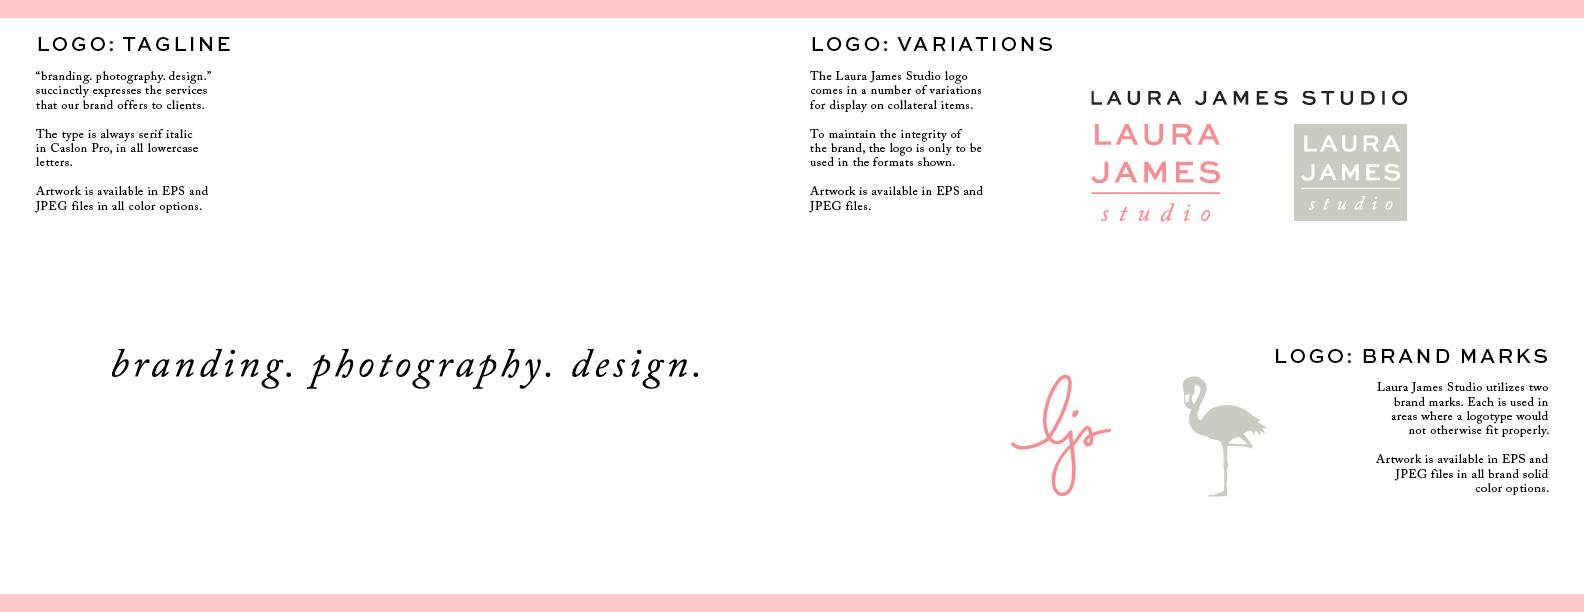 Laura James Studio Brand guide - image 7 - student project